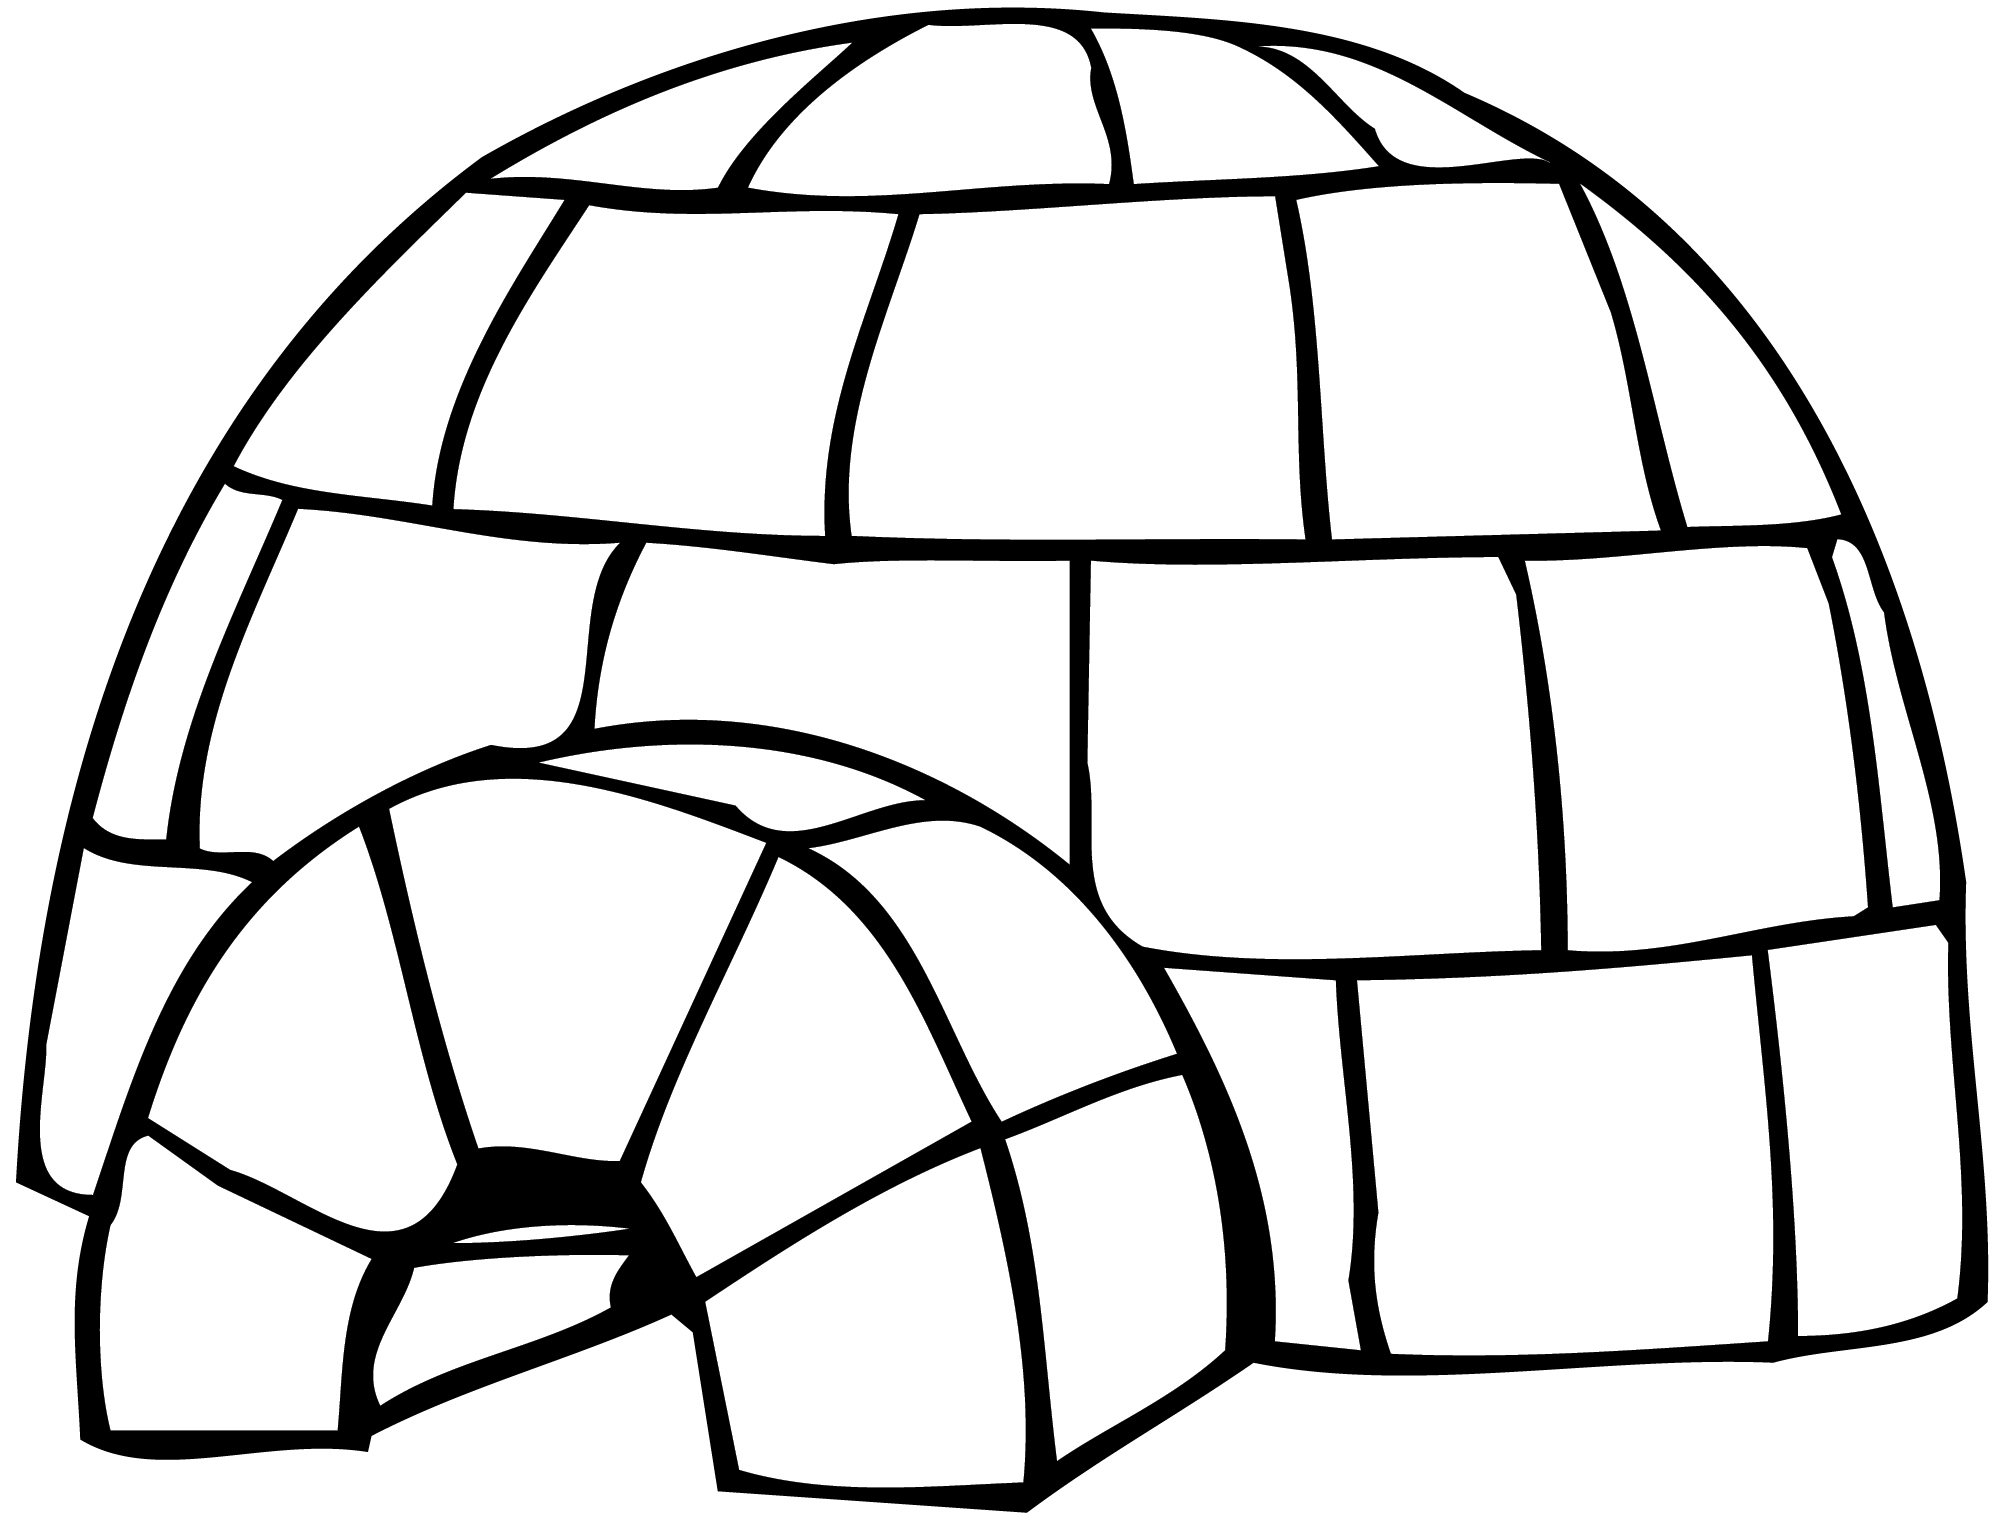 Cartoon igloo clipart